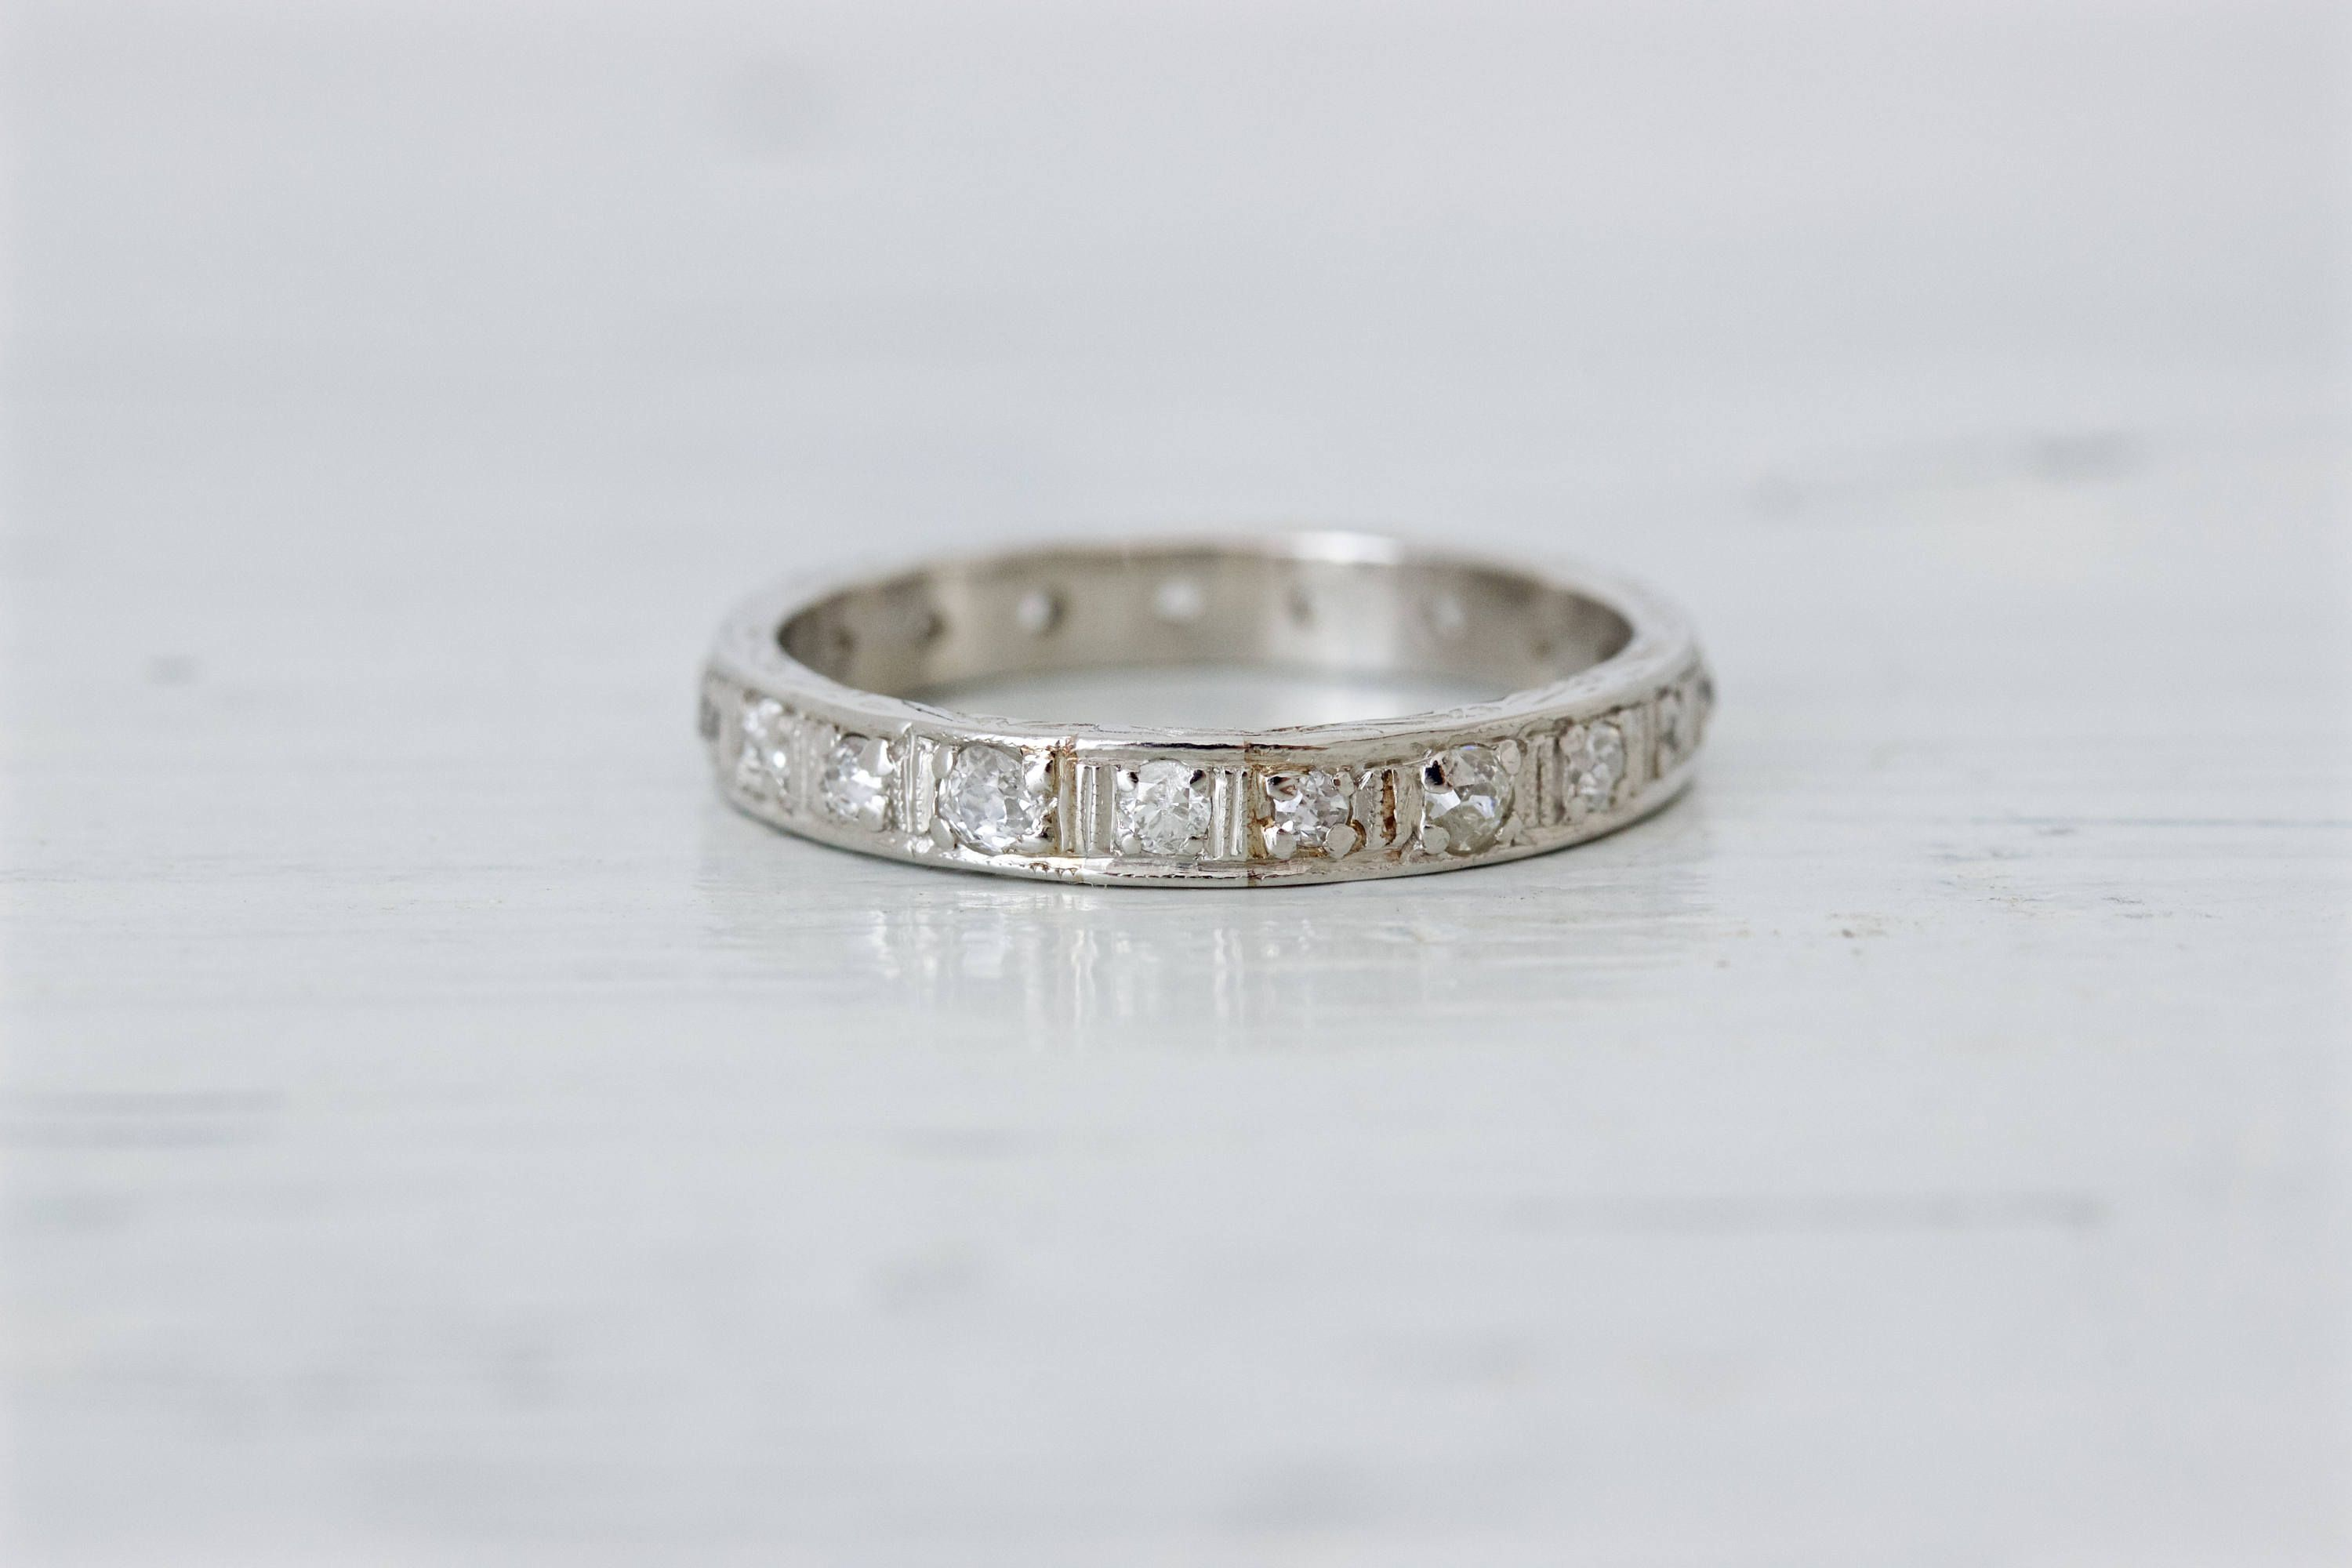 winters ring antique bands floral erika blog gia trends us en engagement jewelry diamond fine